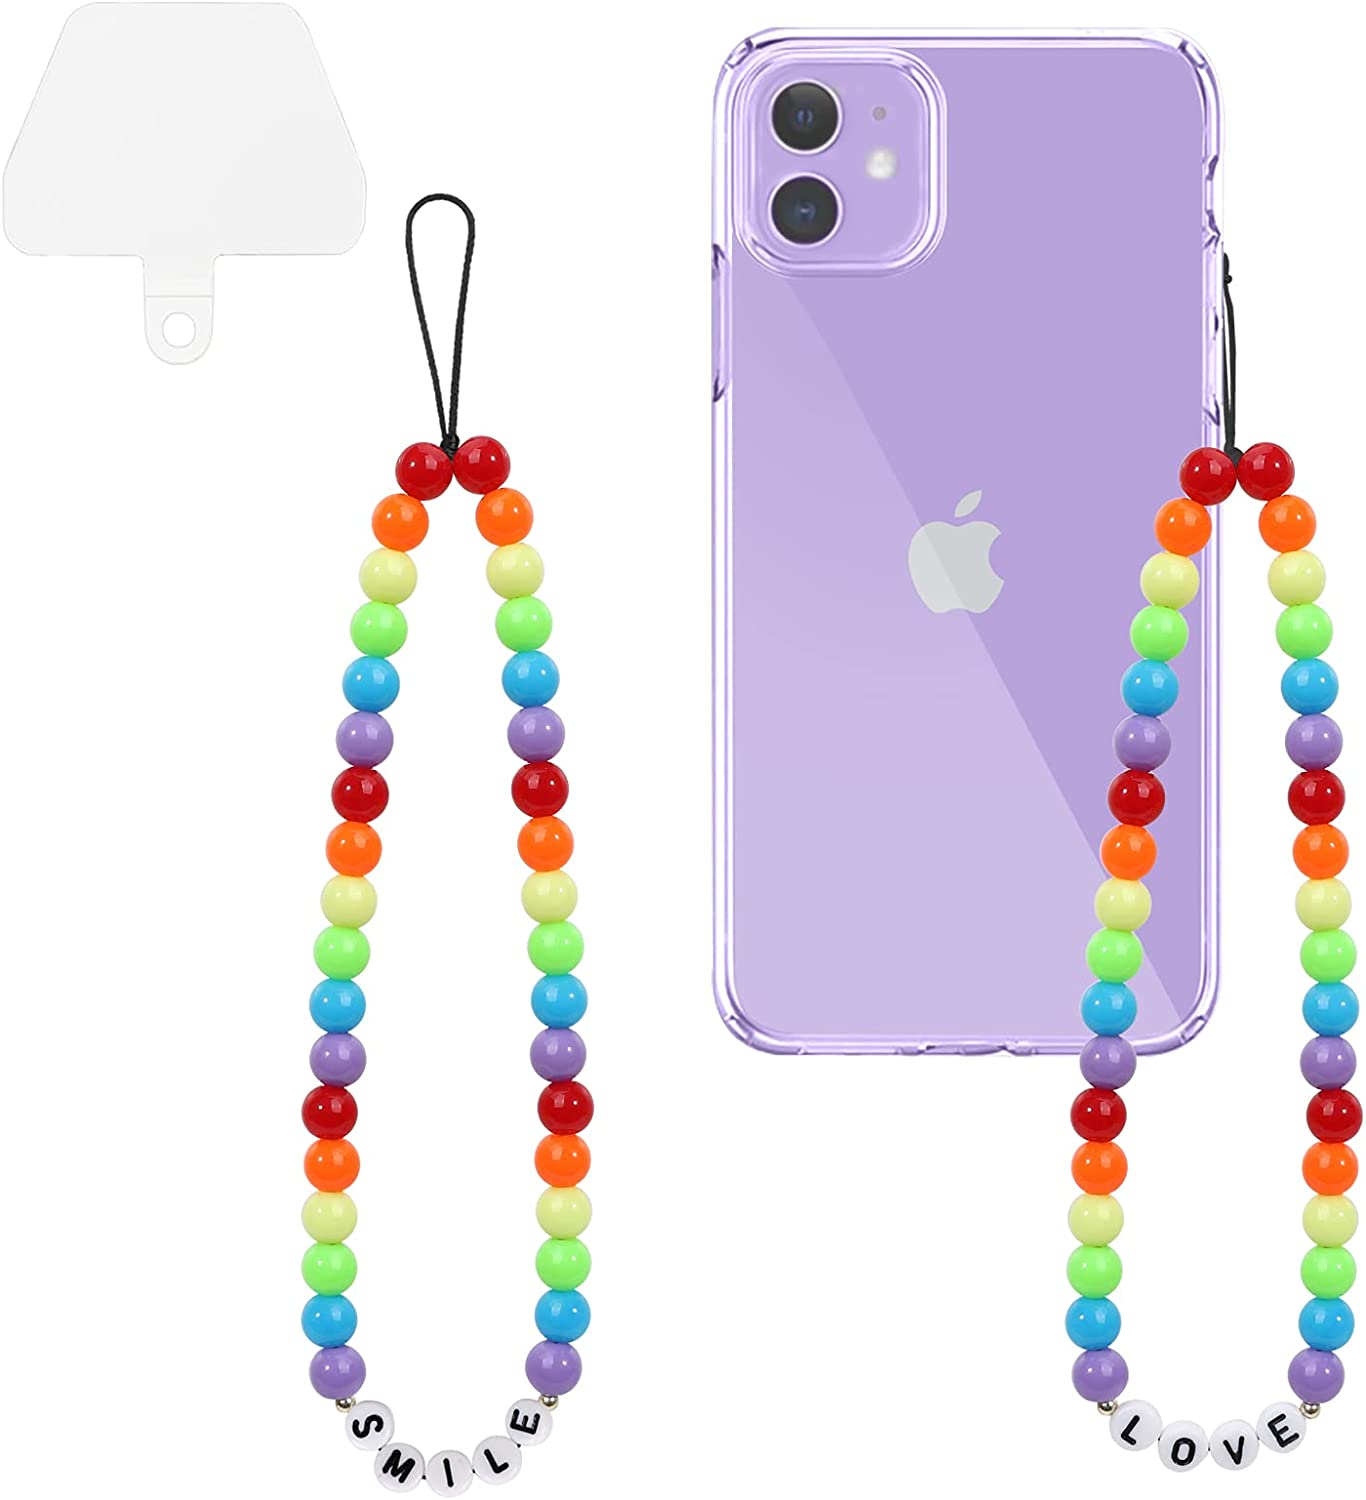 Wrist Lanyard Max 57% OFF YUOROS 2 Pack Cell Car 5% OFF Phone Charms Bead